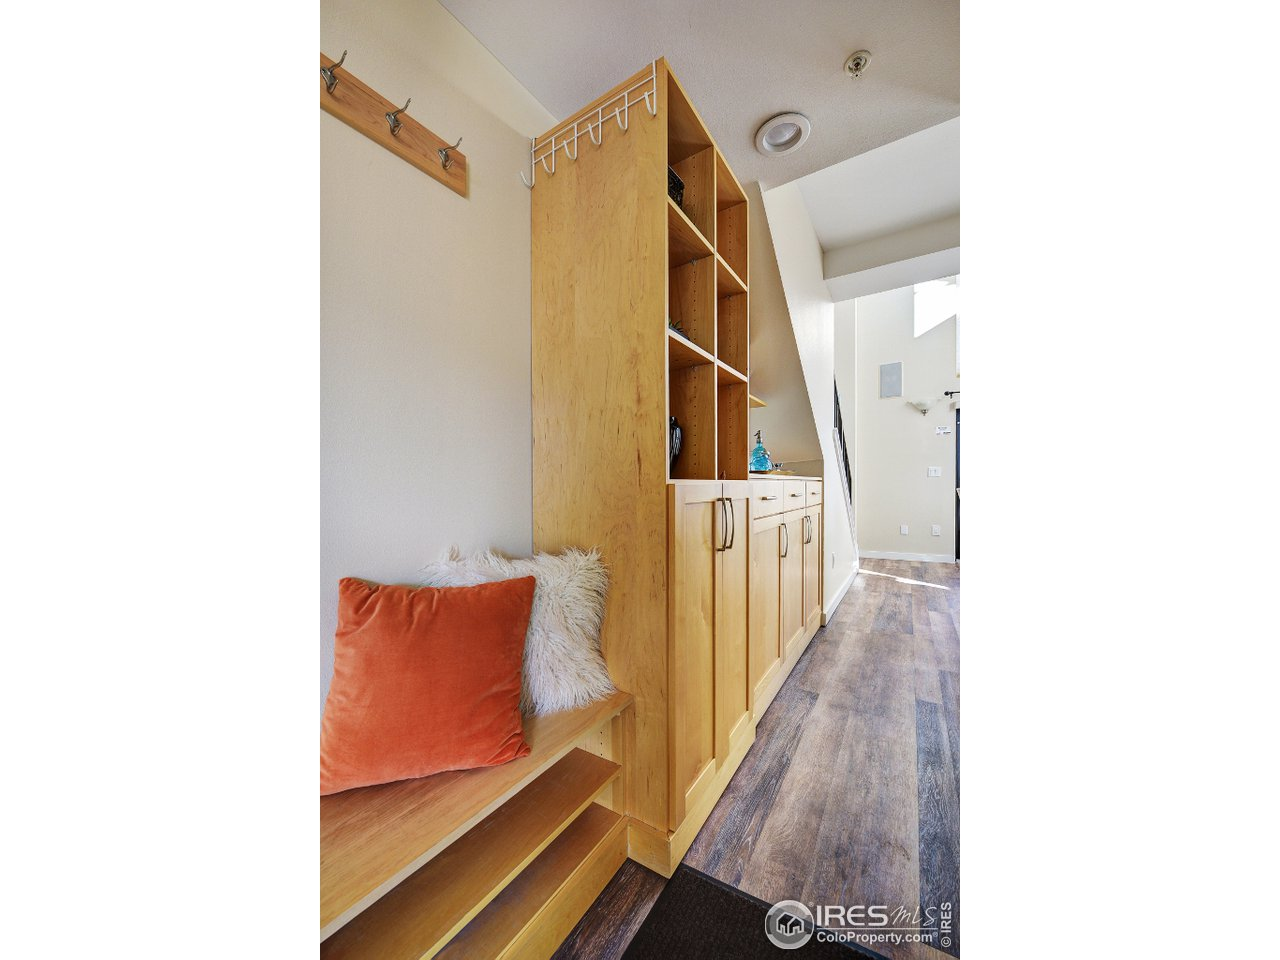 Built-ins for added storage